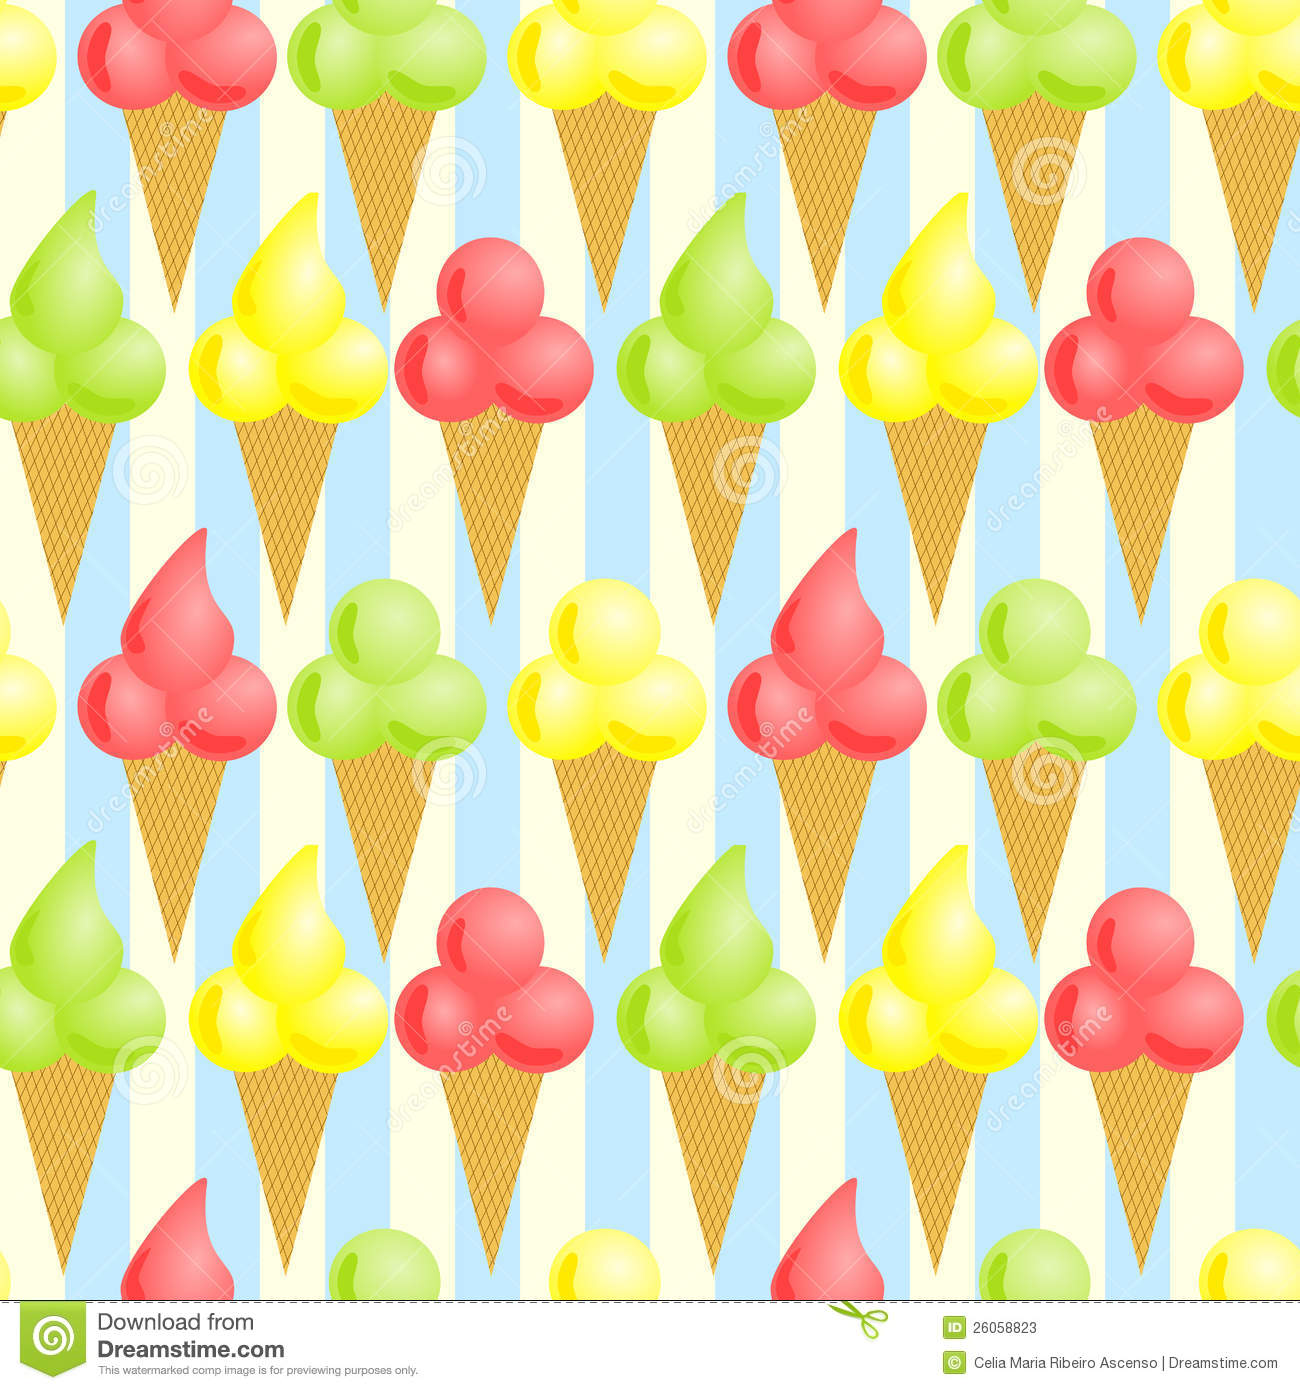 Free Backgrounds Ice Cream Cone Hd Desktop Wallpaper: Seamless Ice Cream Cones Background Stock Illustration